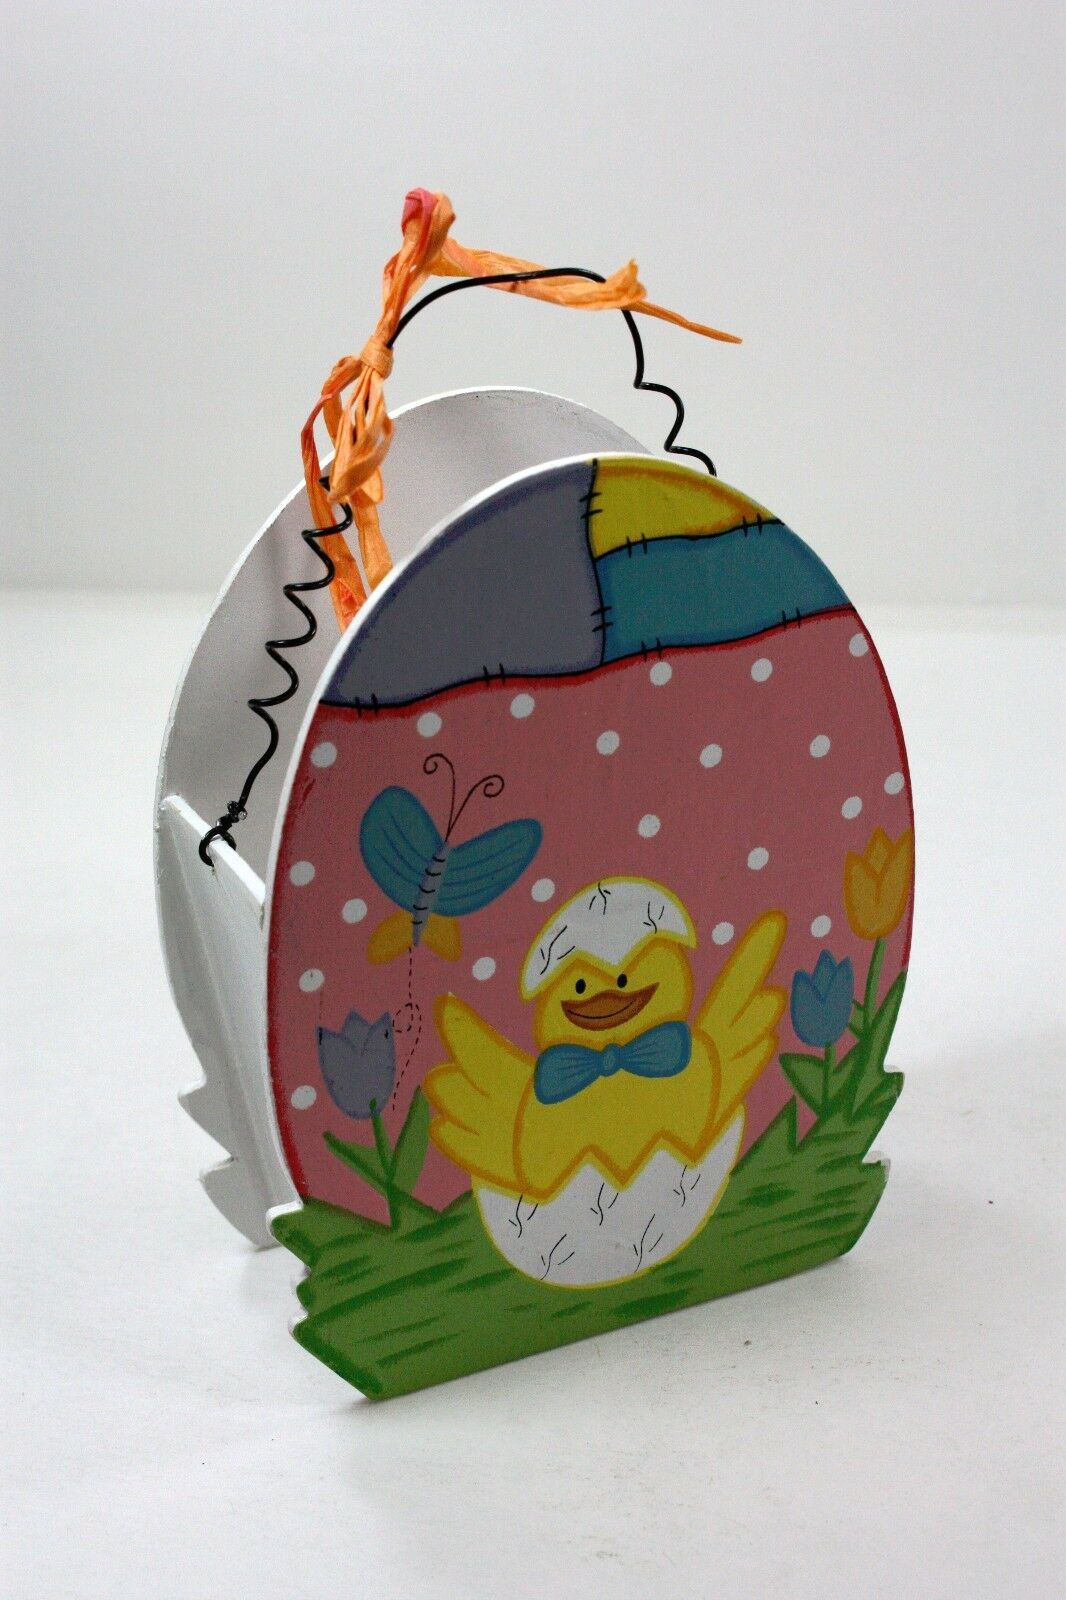 Holiday happy easter egg shaped gift box home decoration chick holiday happy easter egg shaped gift box home decoration chick butterfly negle Images